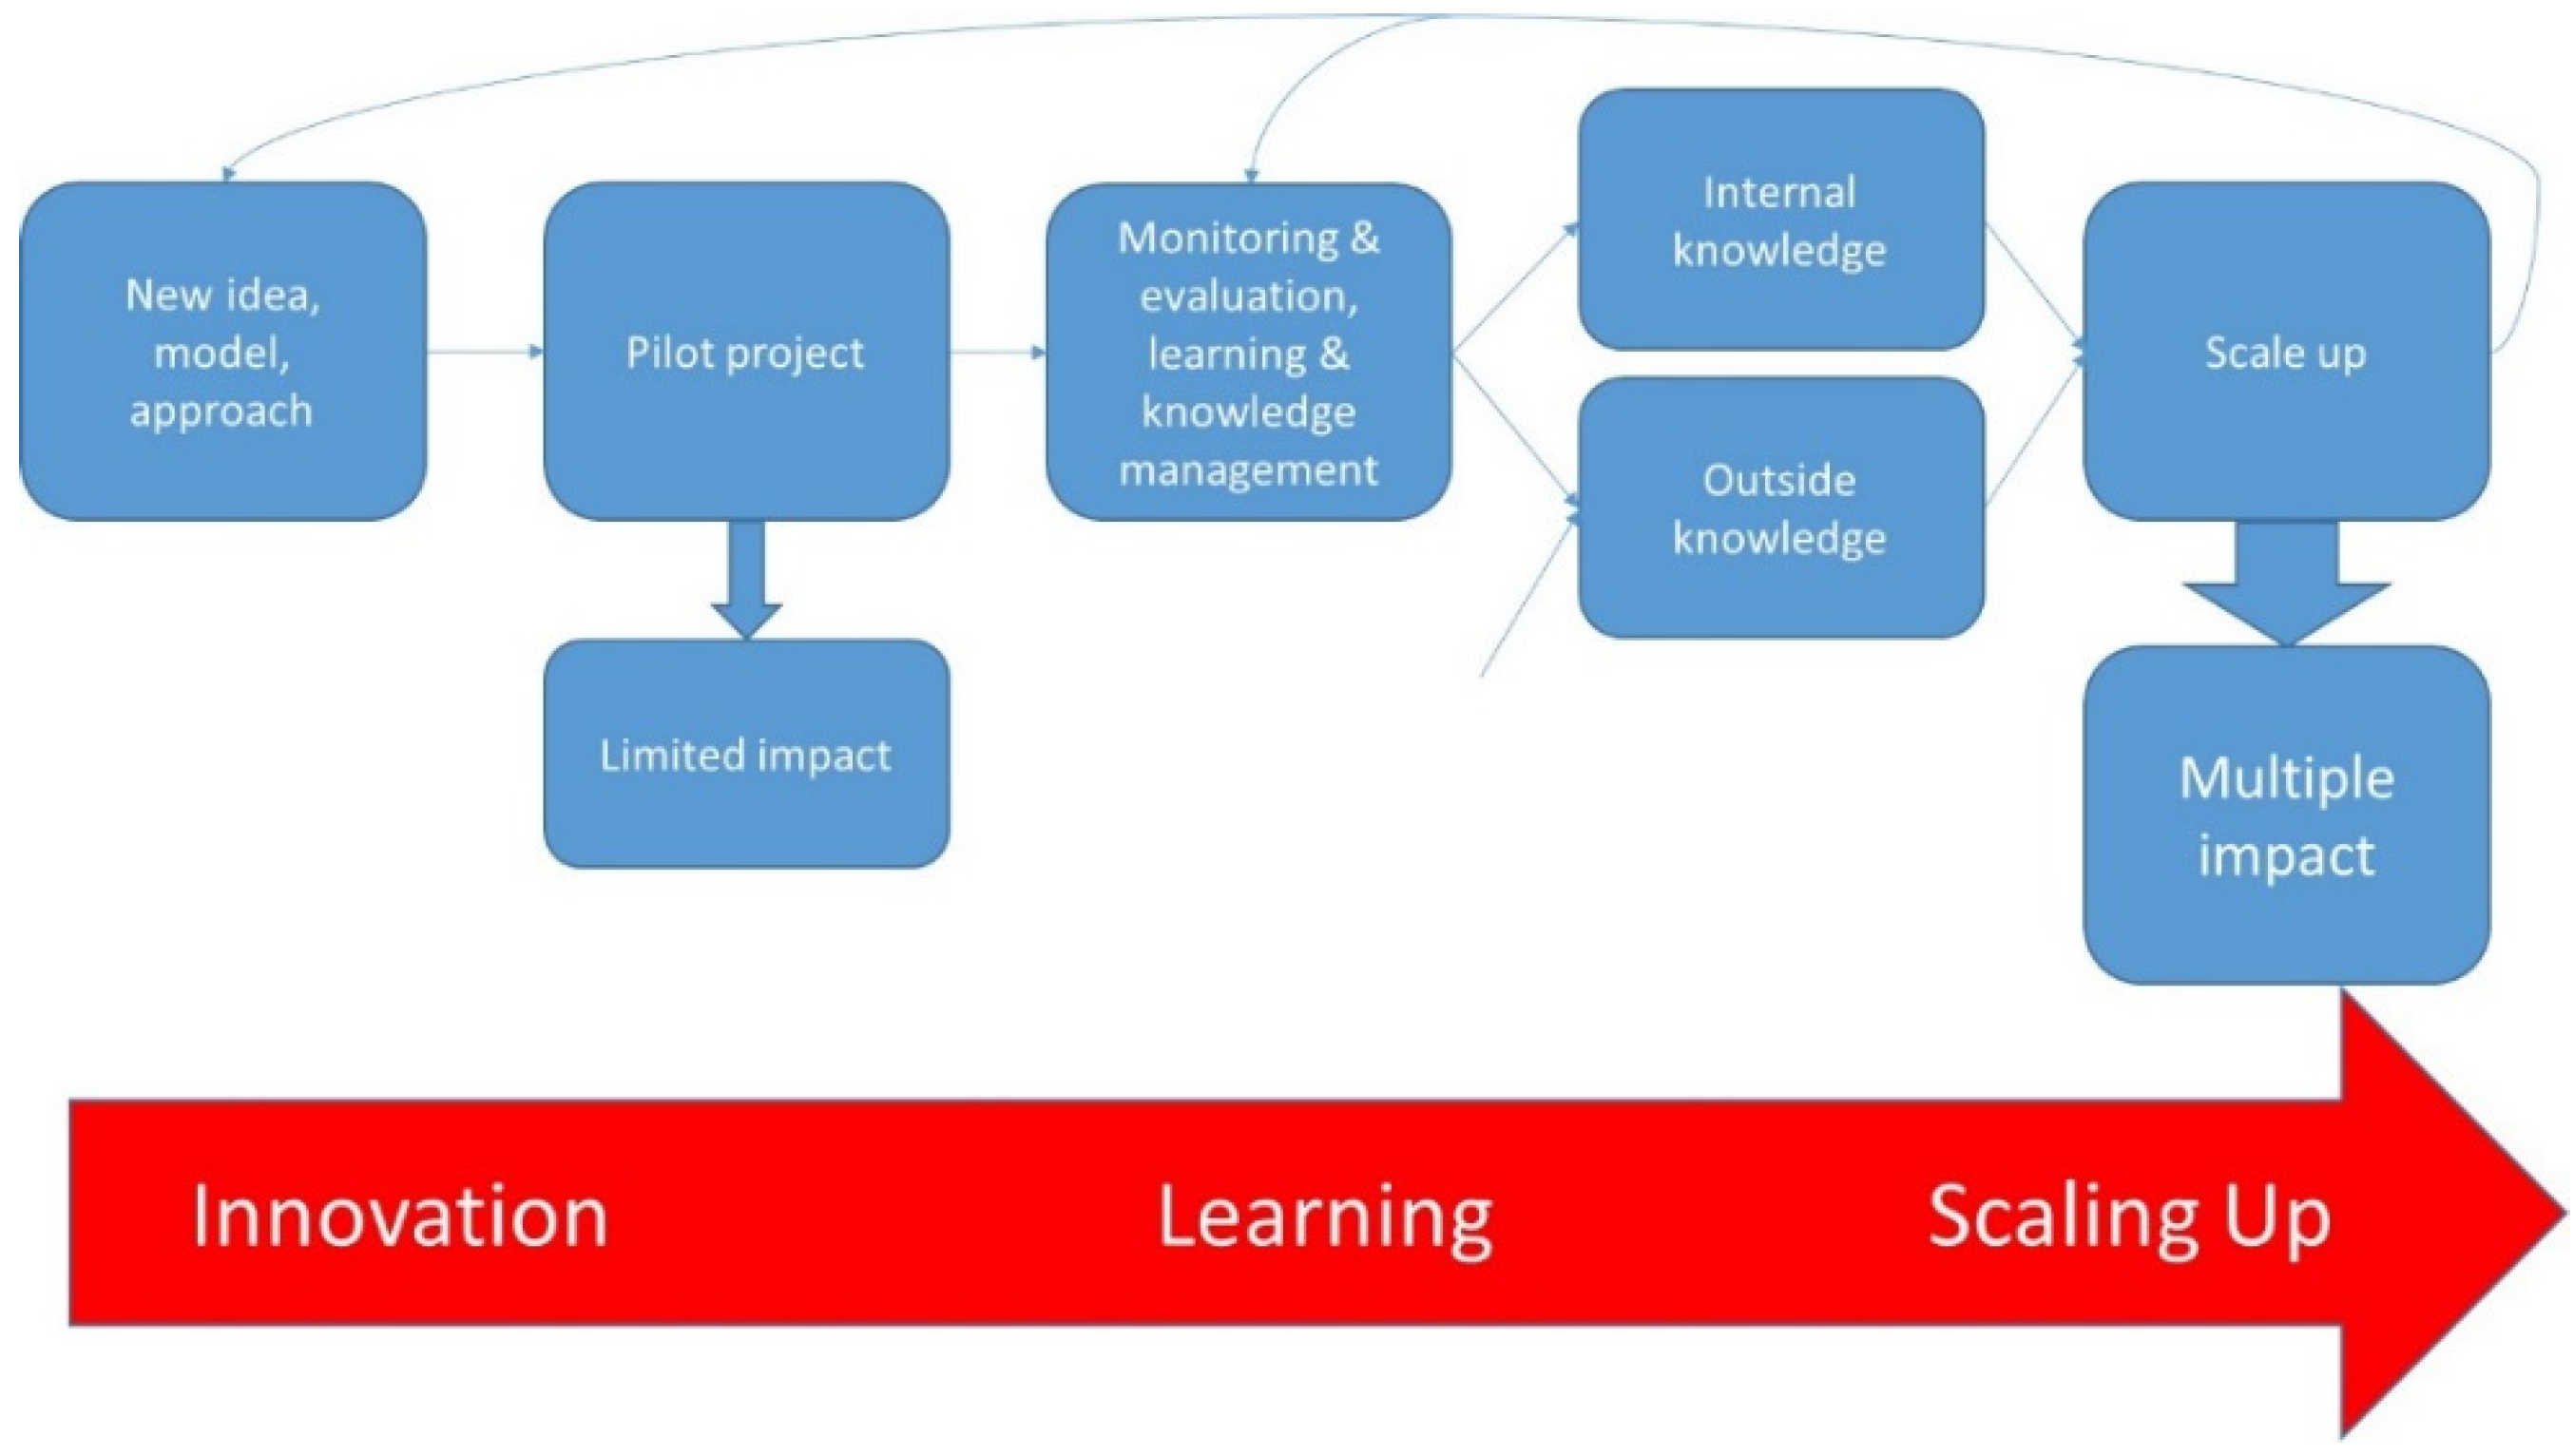 thesis in project approaches to monitoring and evaluation A review of monitoring and evaluation approaches and lessons learned in conservation summary results from the measuring conservation impact initiative.